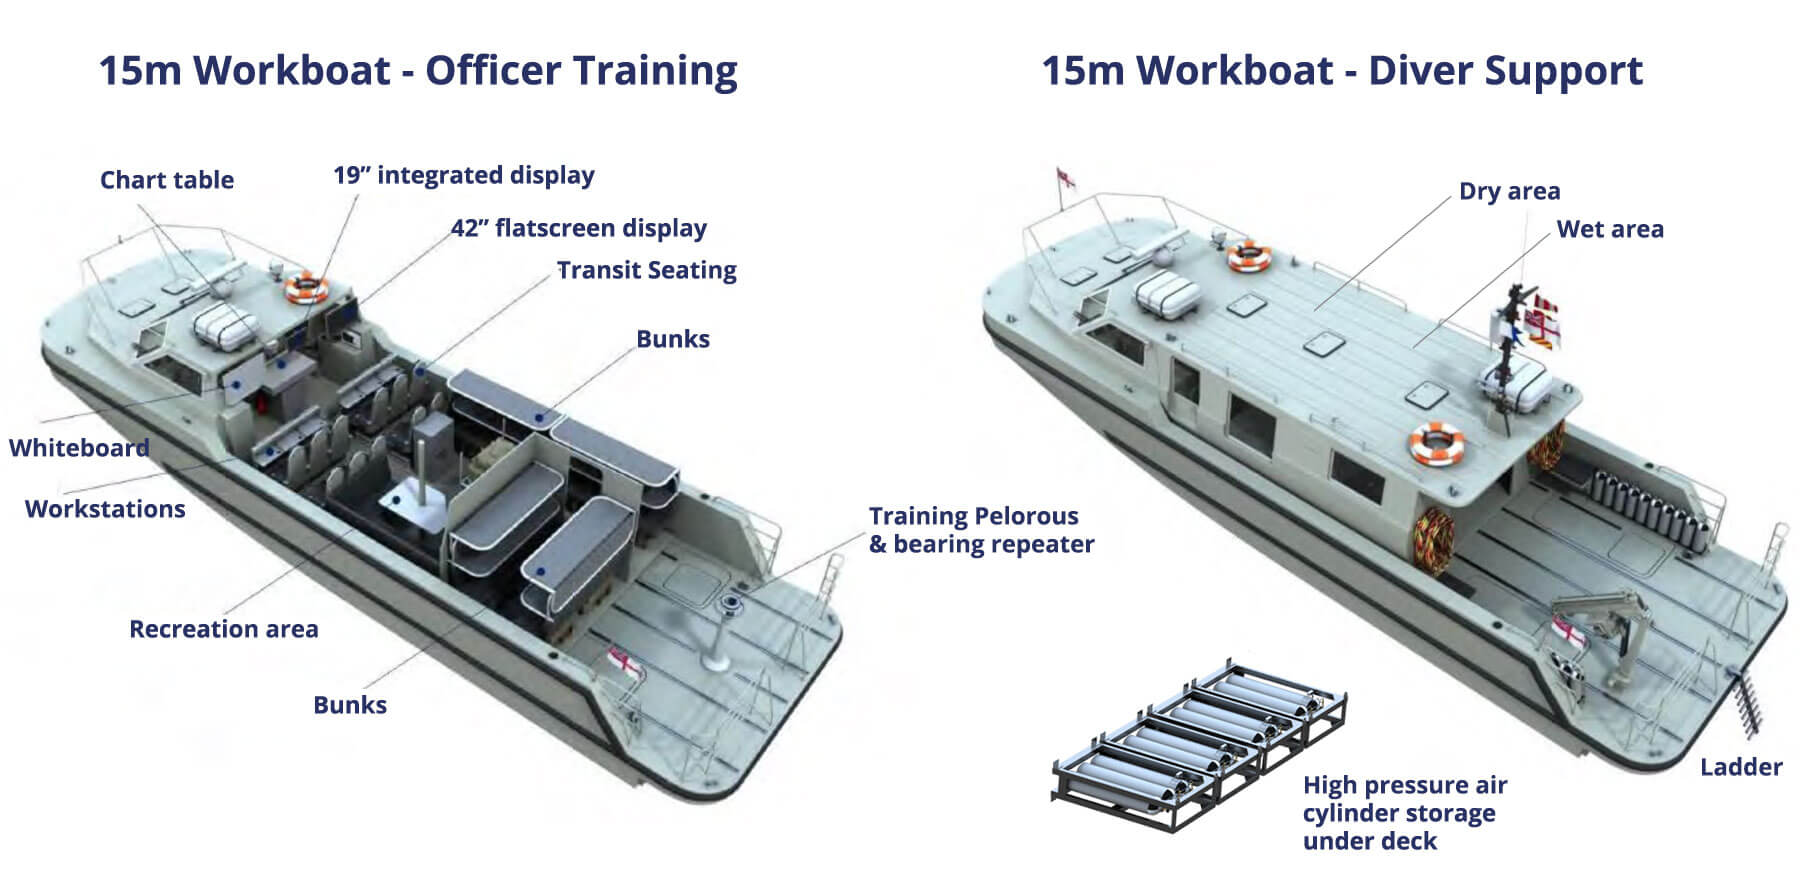 Officer training and Dive Support modules